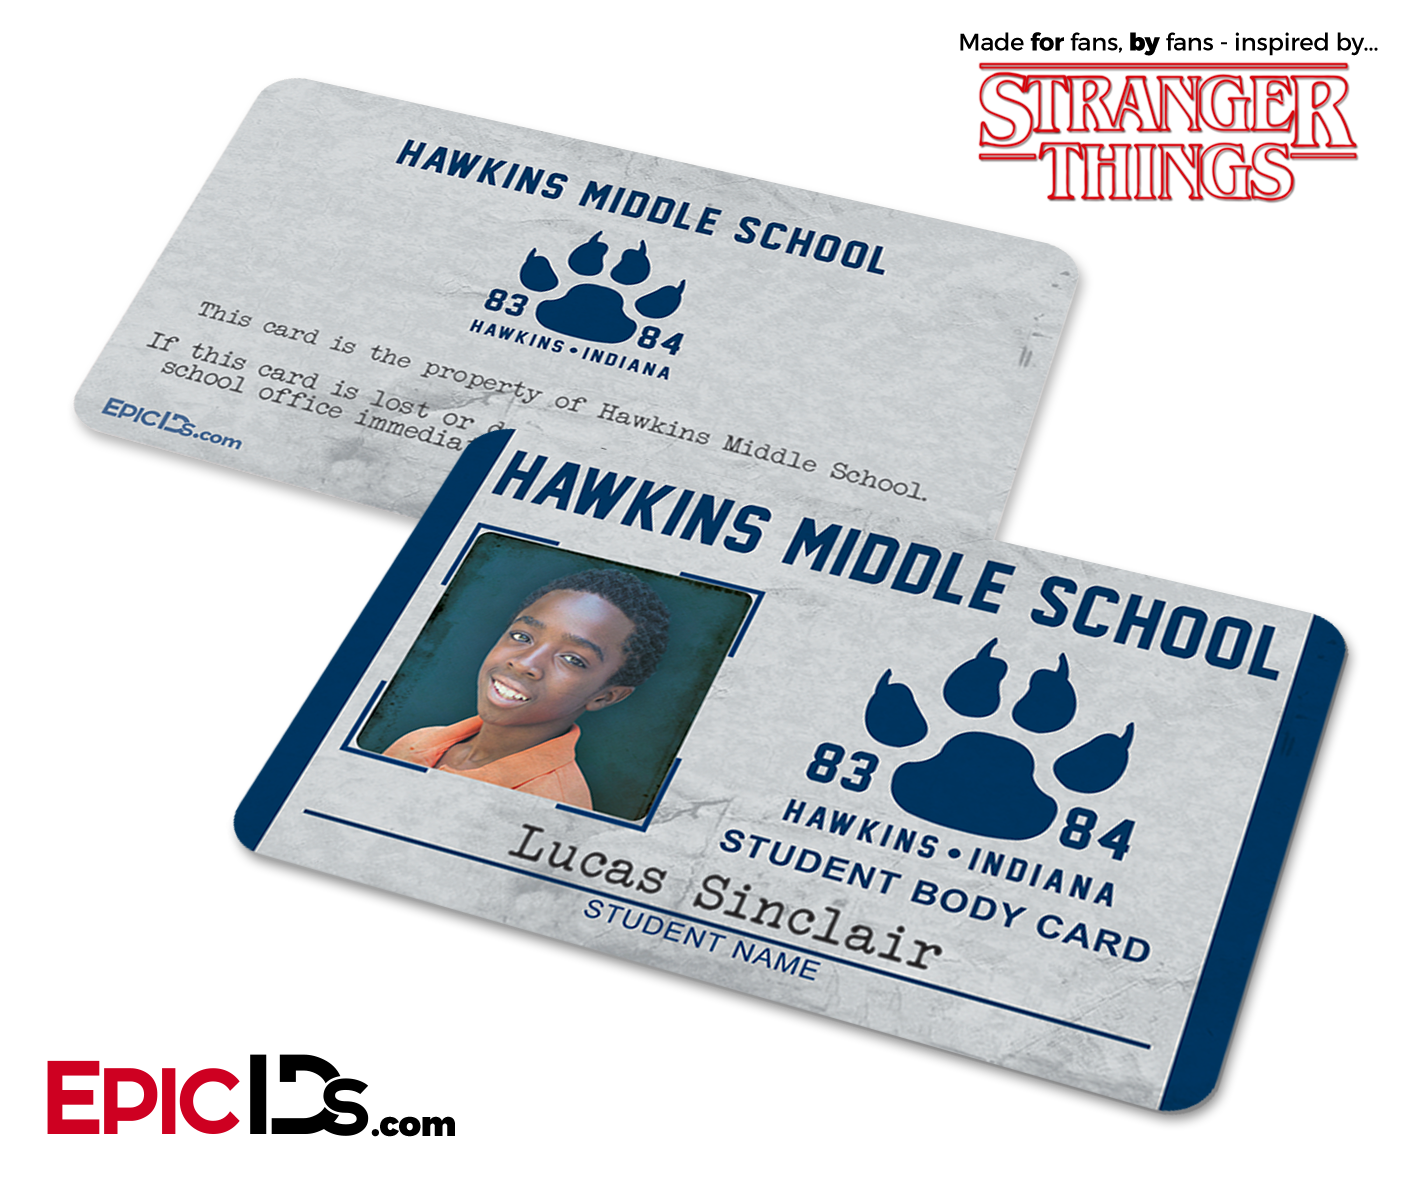 hawkins middle school stranger things student id card lucas